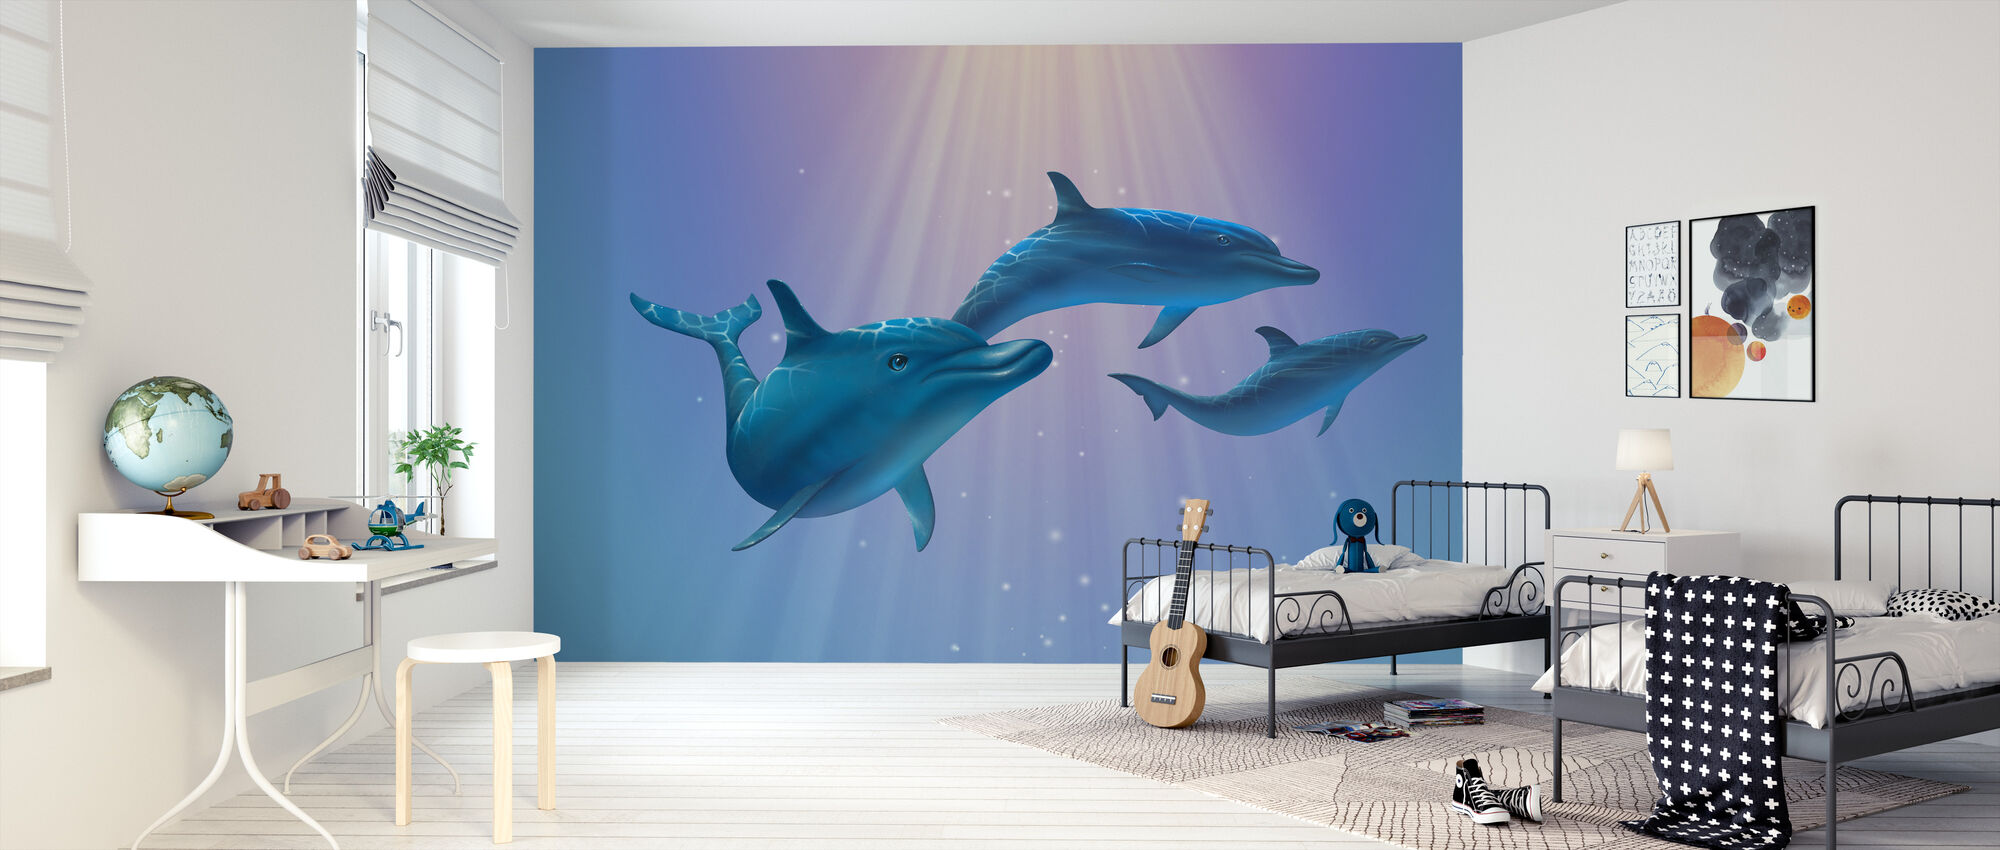 Dolphin Light - Wallpaper - Kids Room